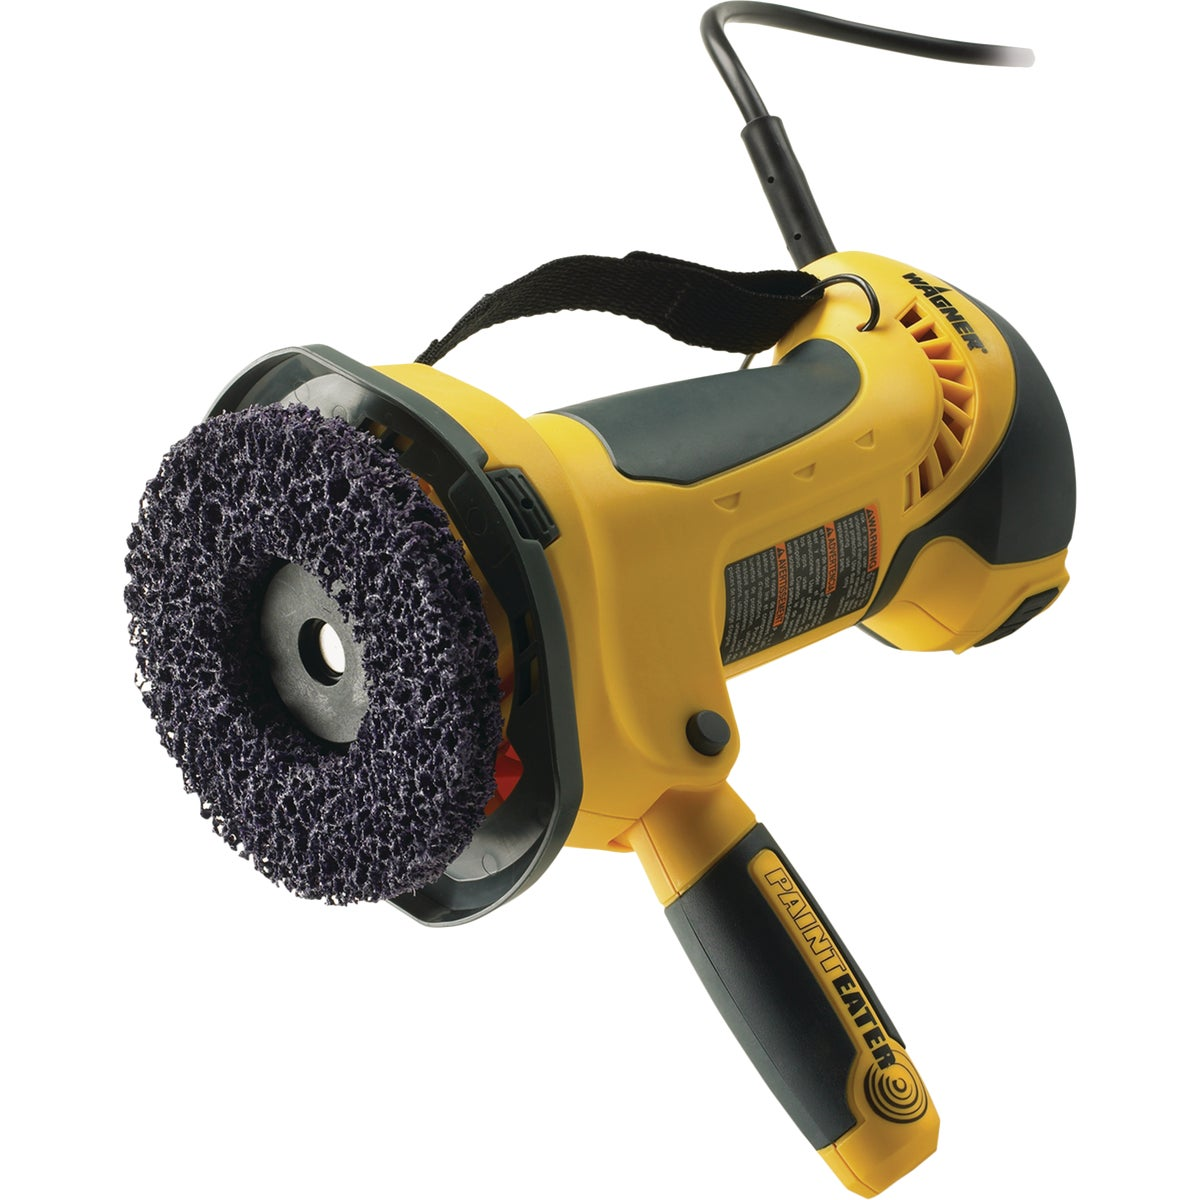 PAINT EATER ORBIT SANDER - 0513040K by Wagner Spray Tech